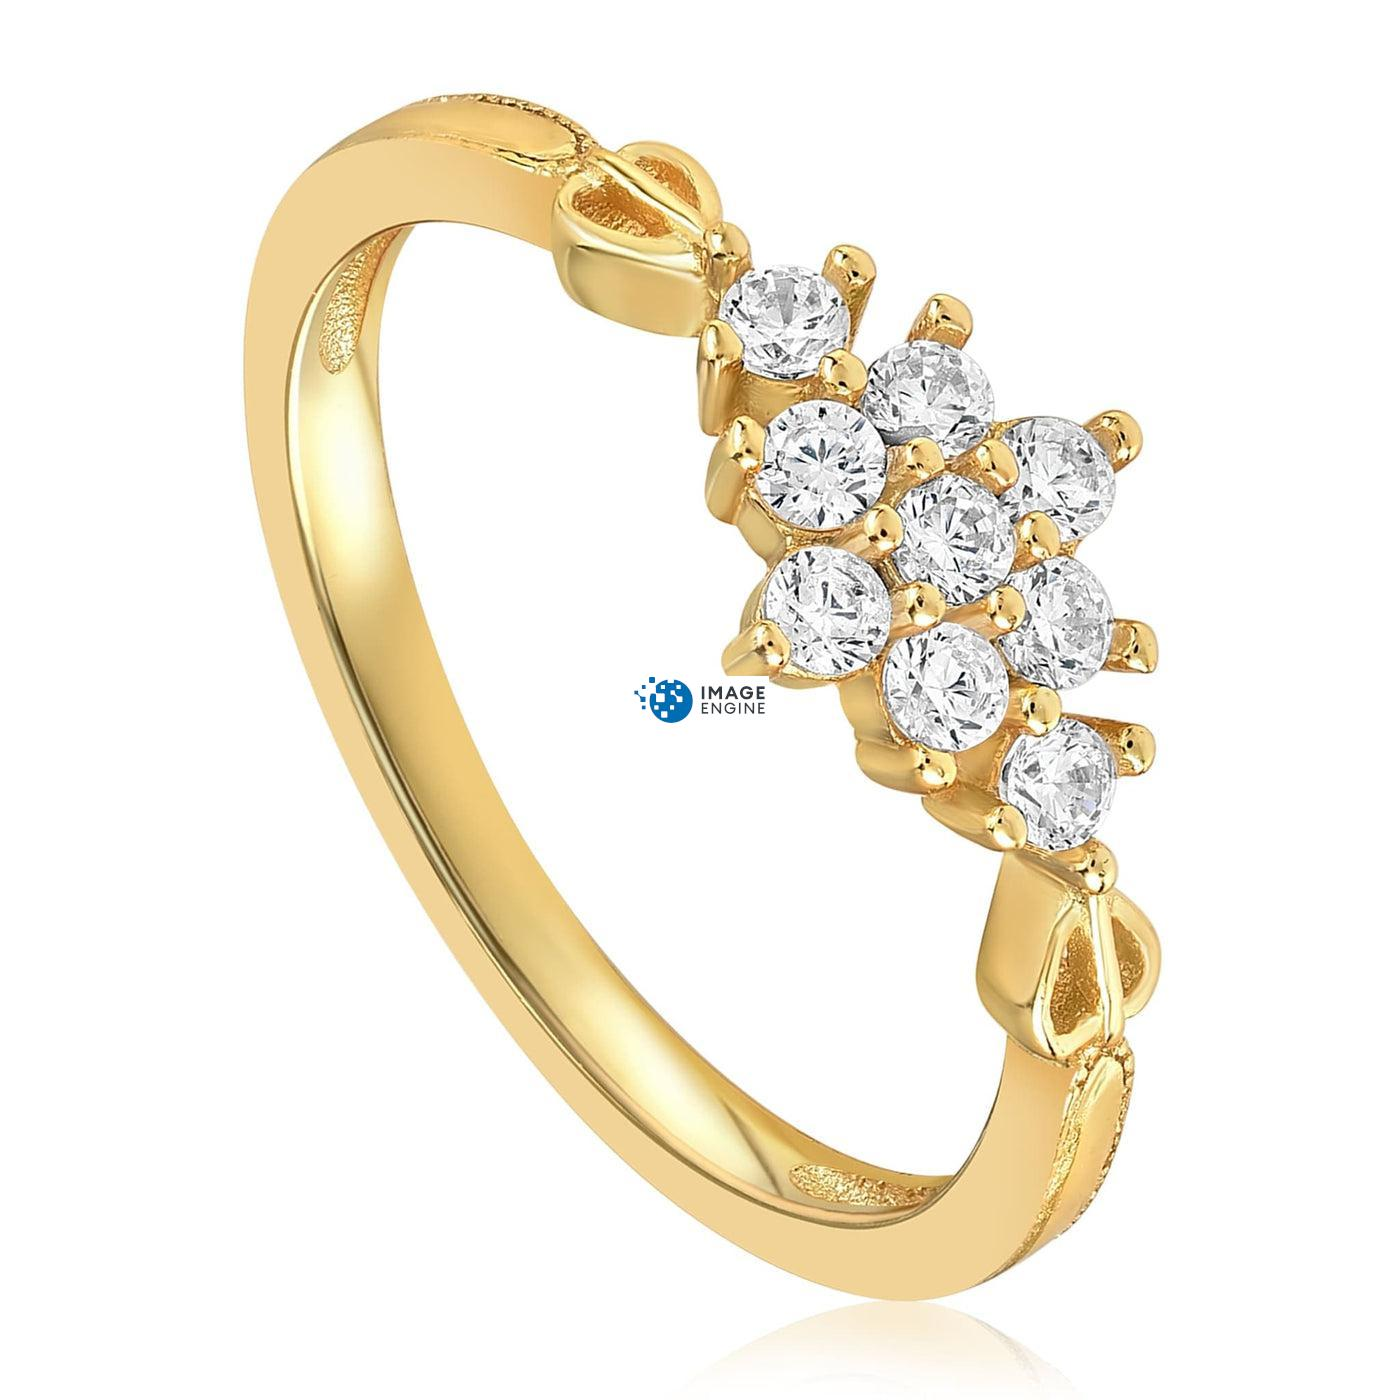 Sarah Snowflake Dainty Ring - Three Quarter View - 18K Yellow Gold Vermeil